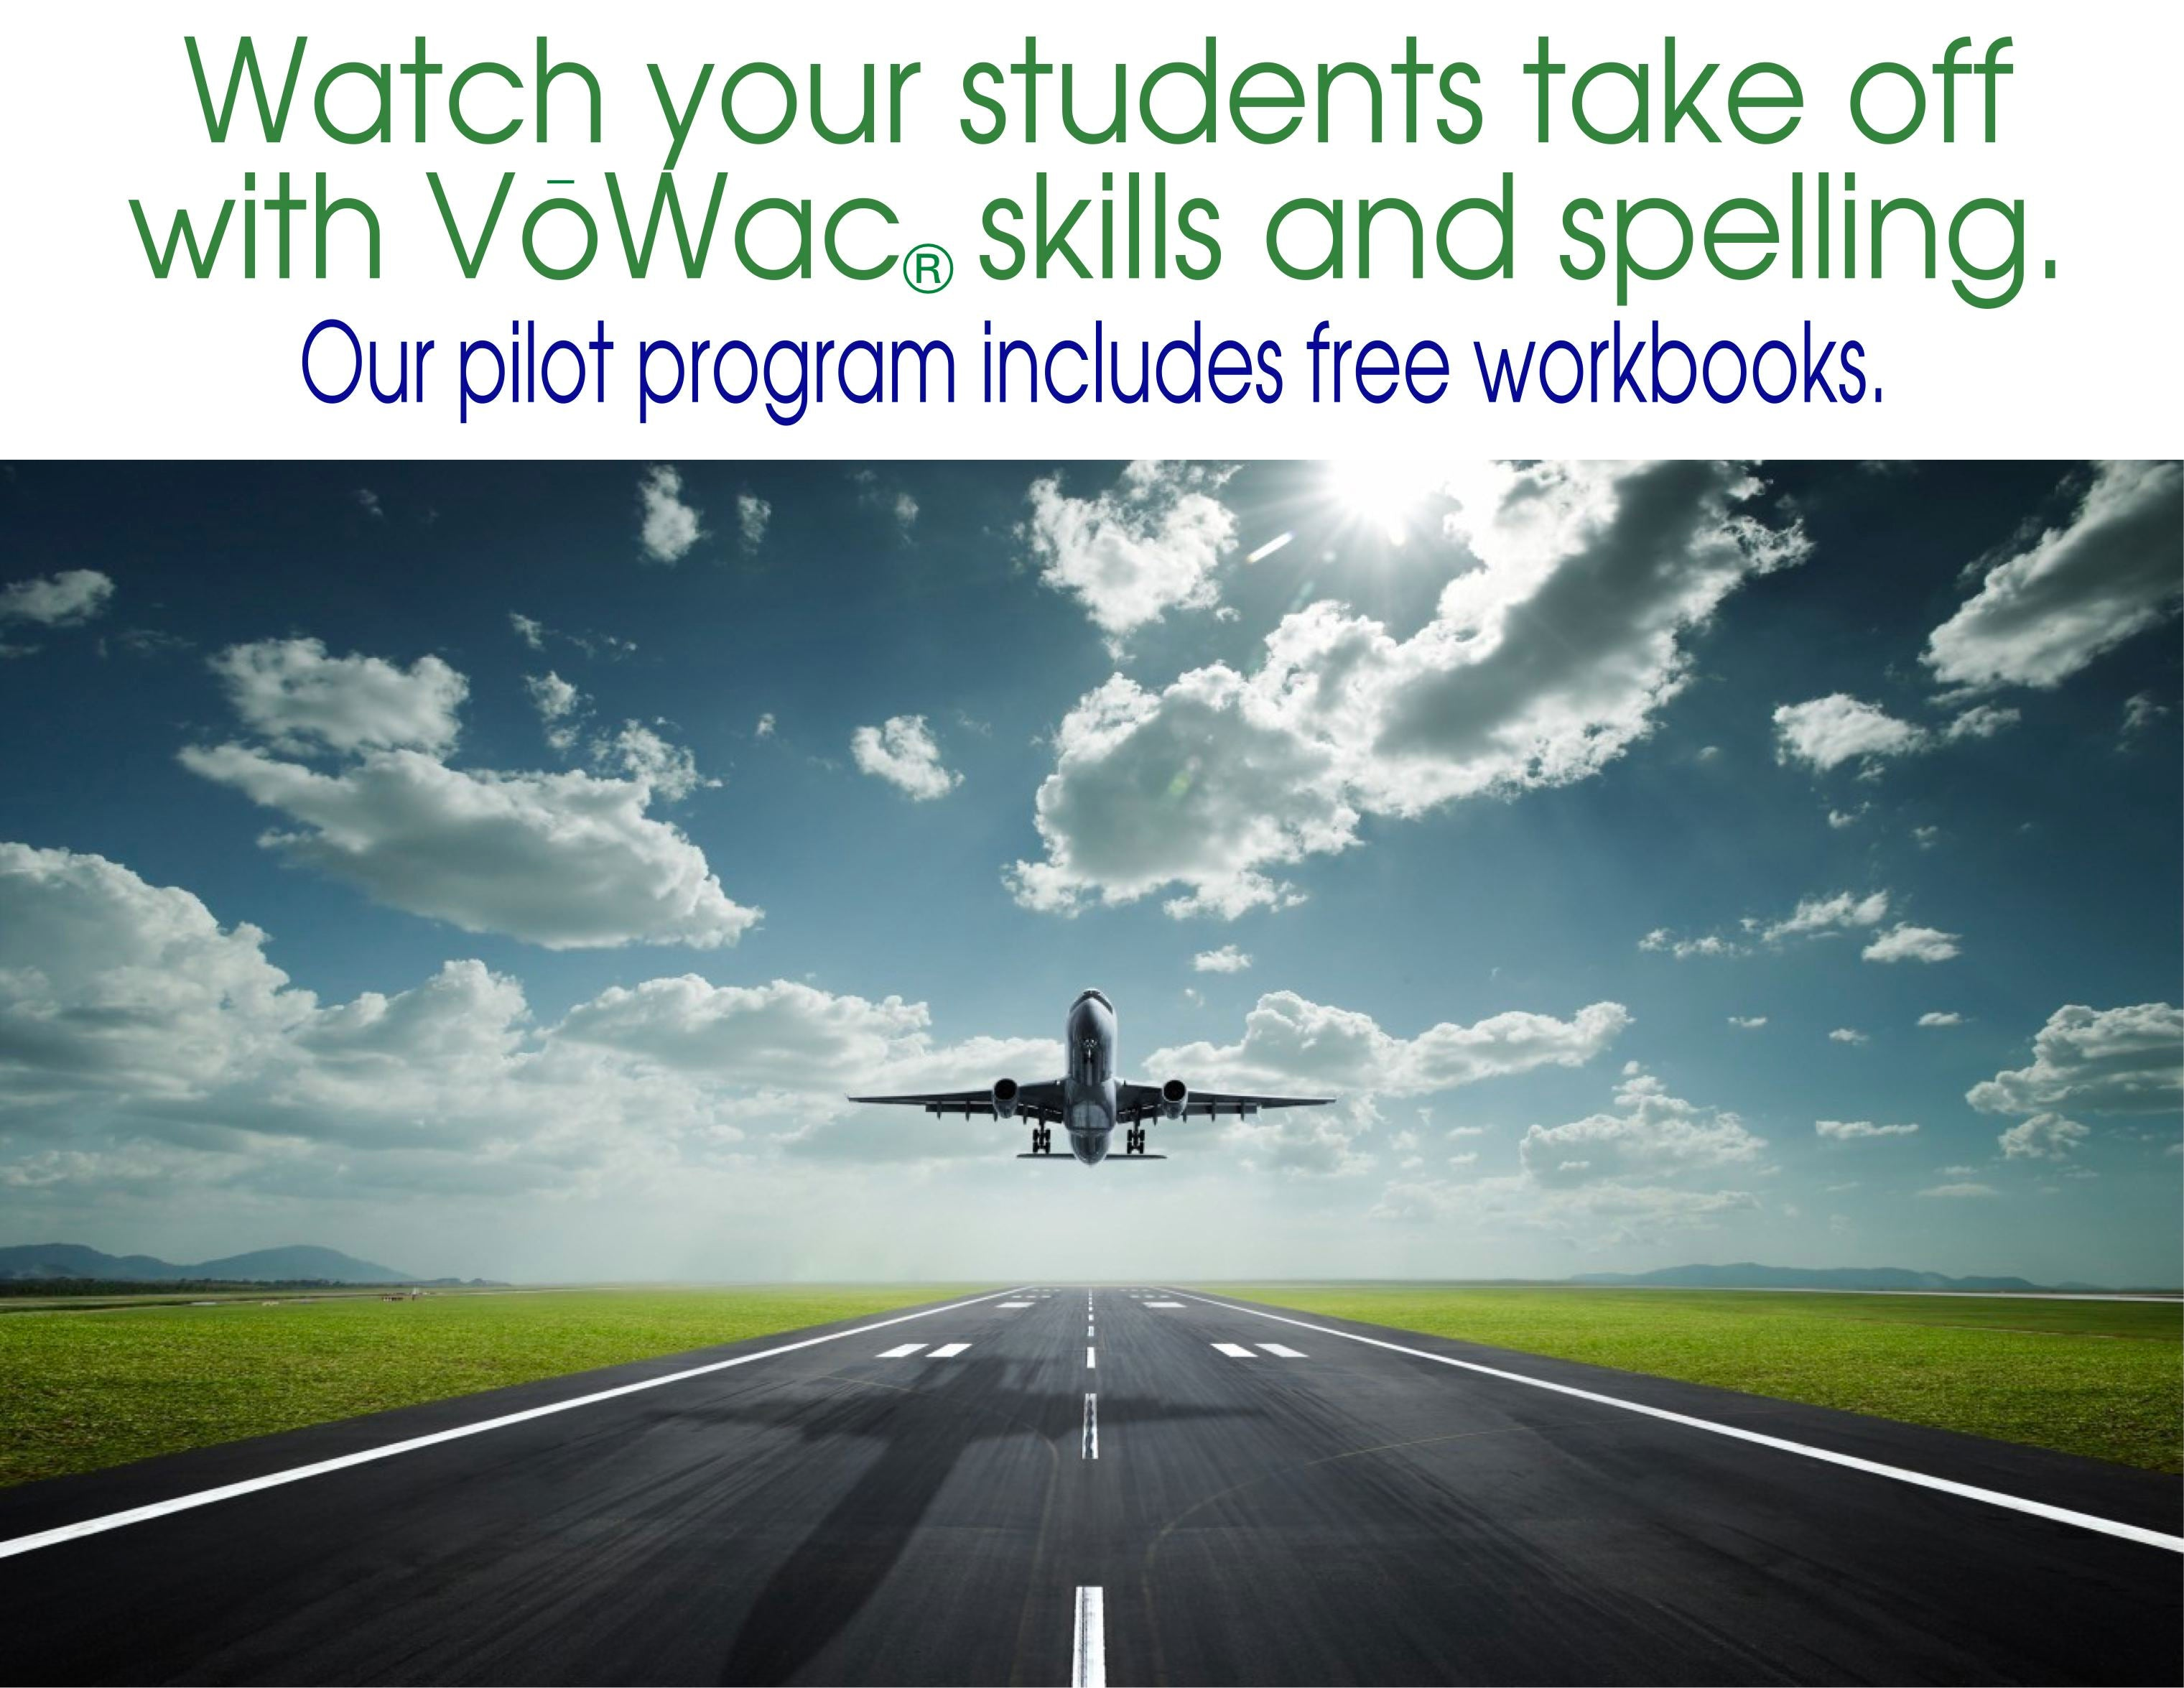 Free workbooks here